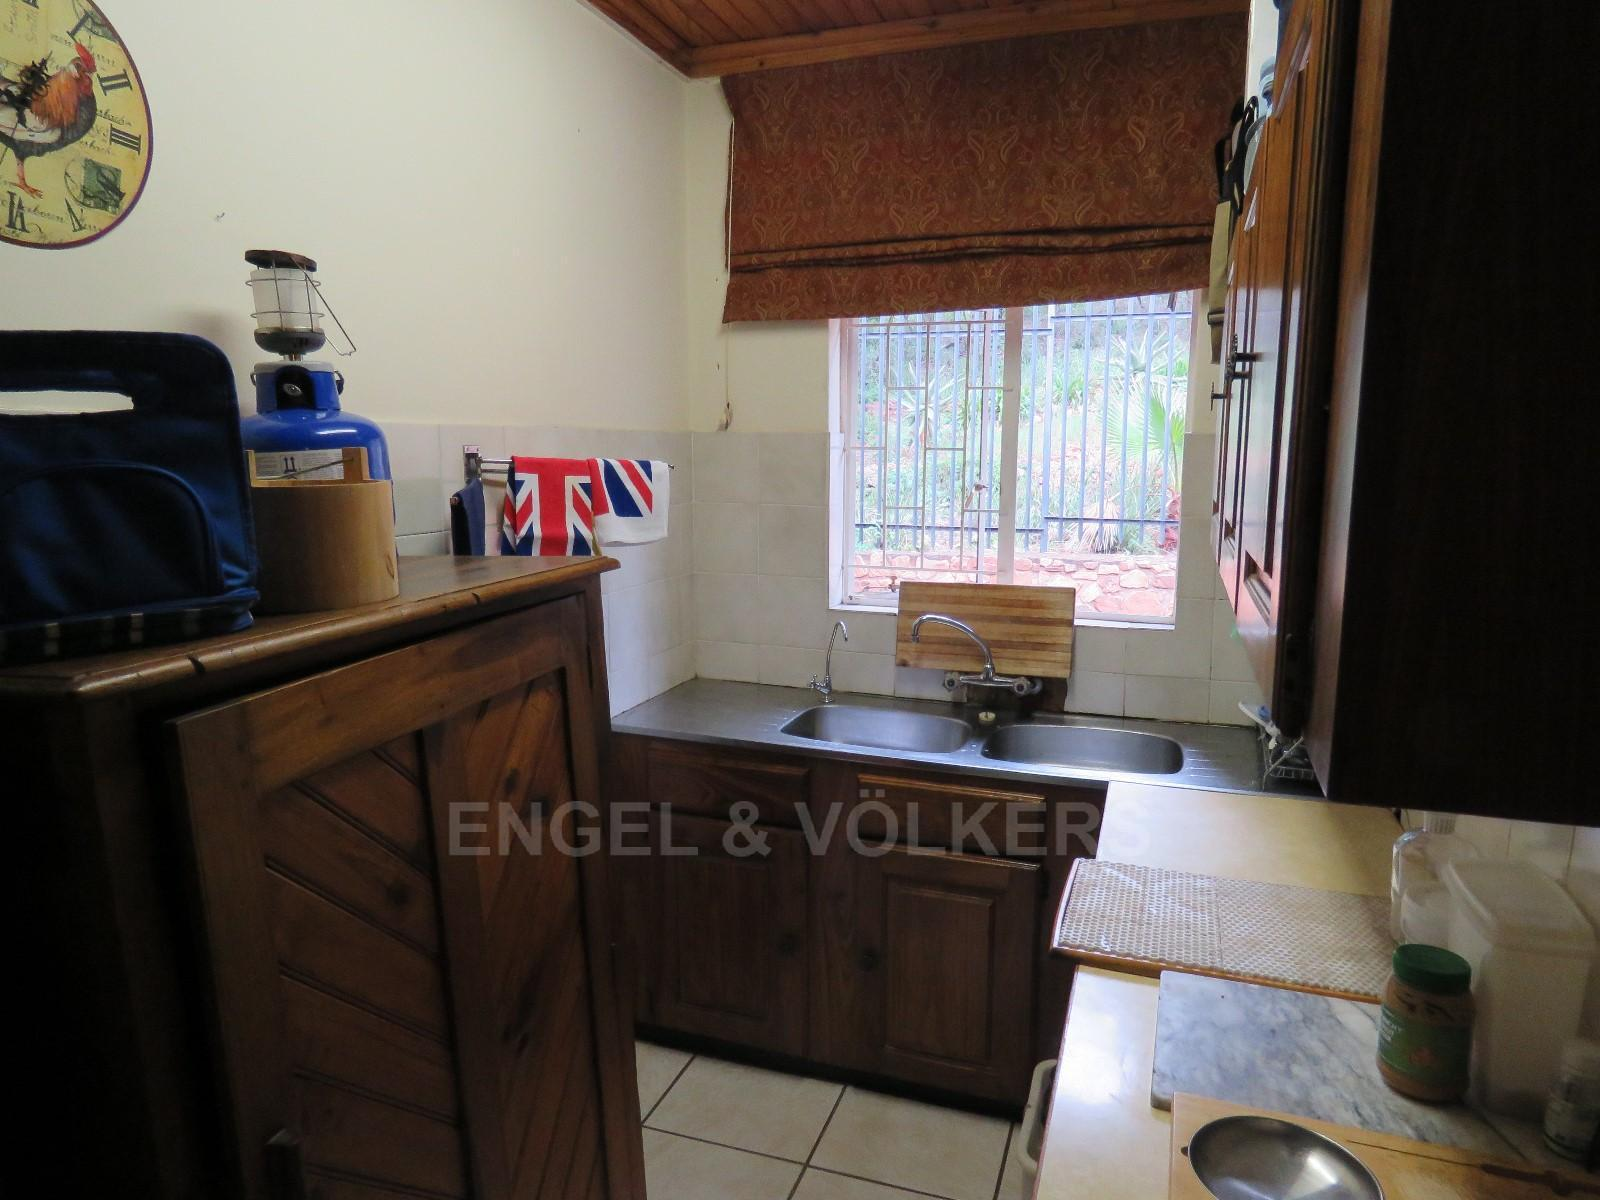 House in Schoemansville - separate scullery